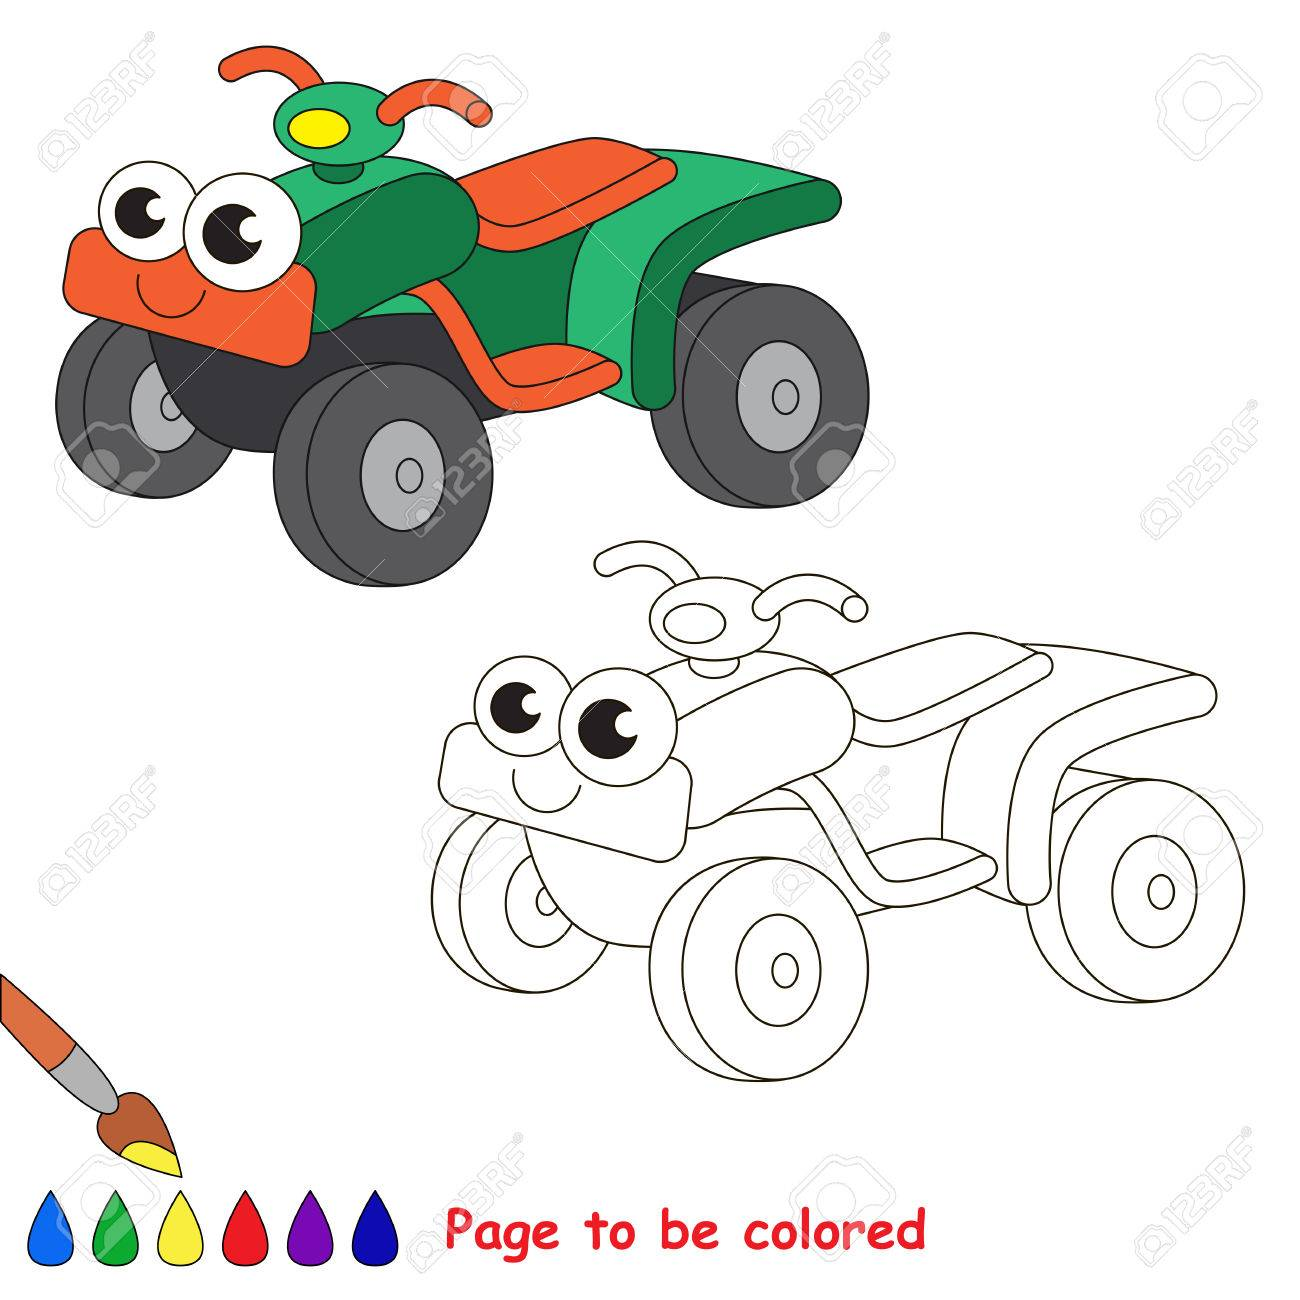 Coloring pages quad bike - Green Quad Bike To Be Colored Coloring Book To Educate Kids Learn Colors